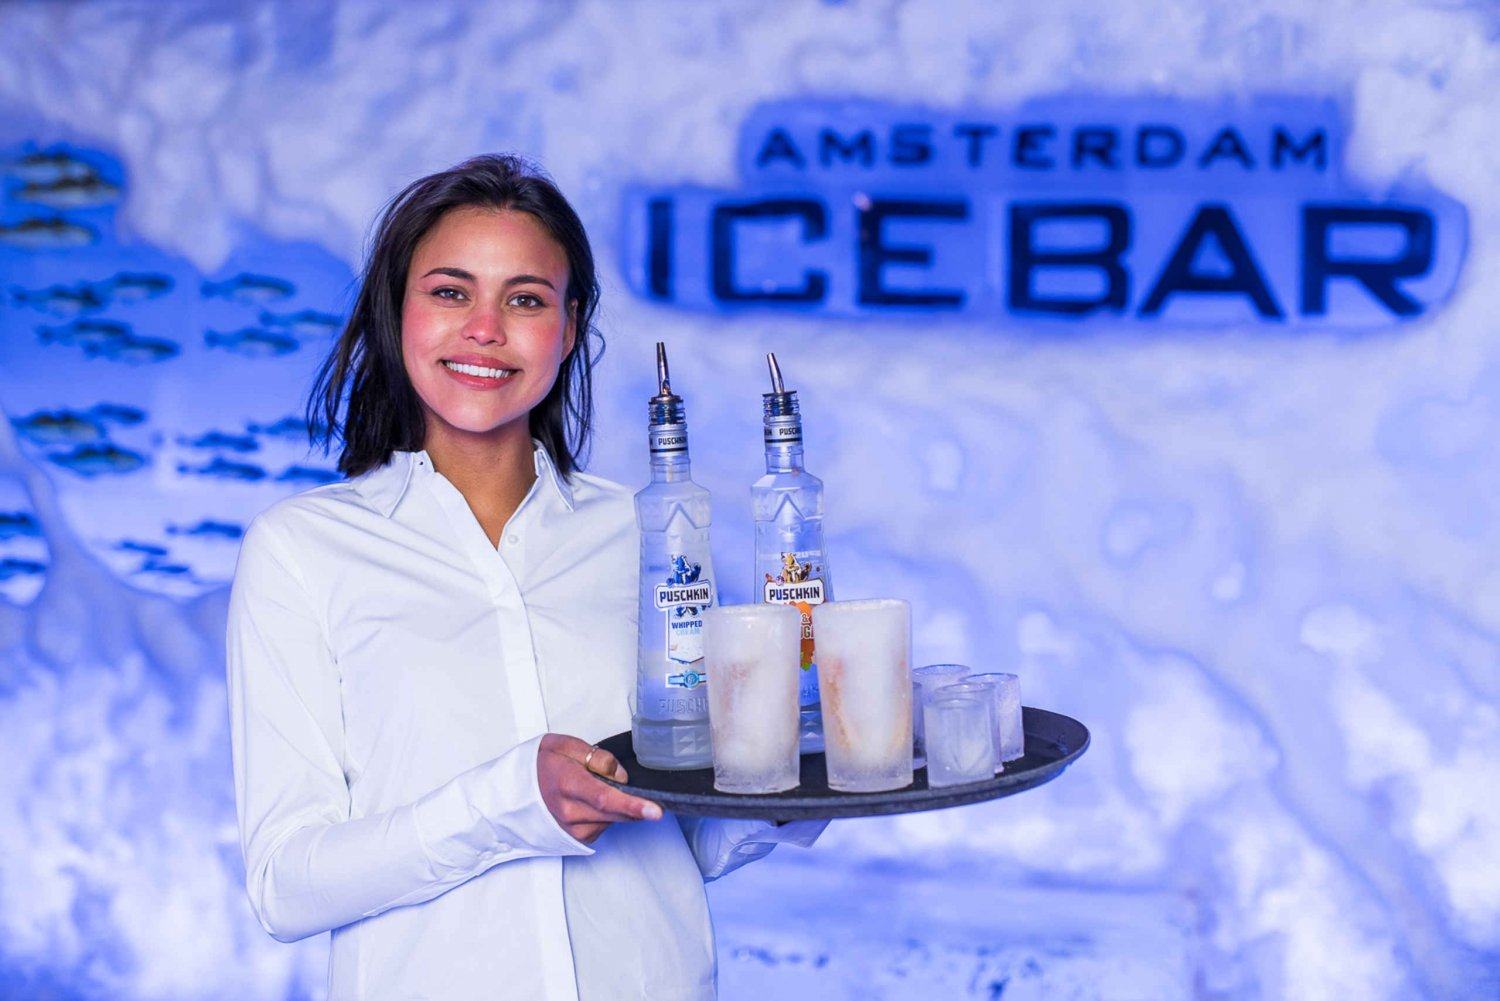 Cocktails at Amsterdam's Icebar